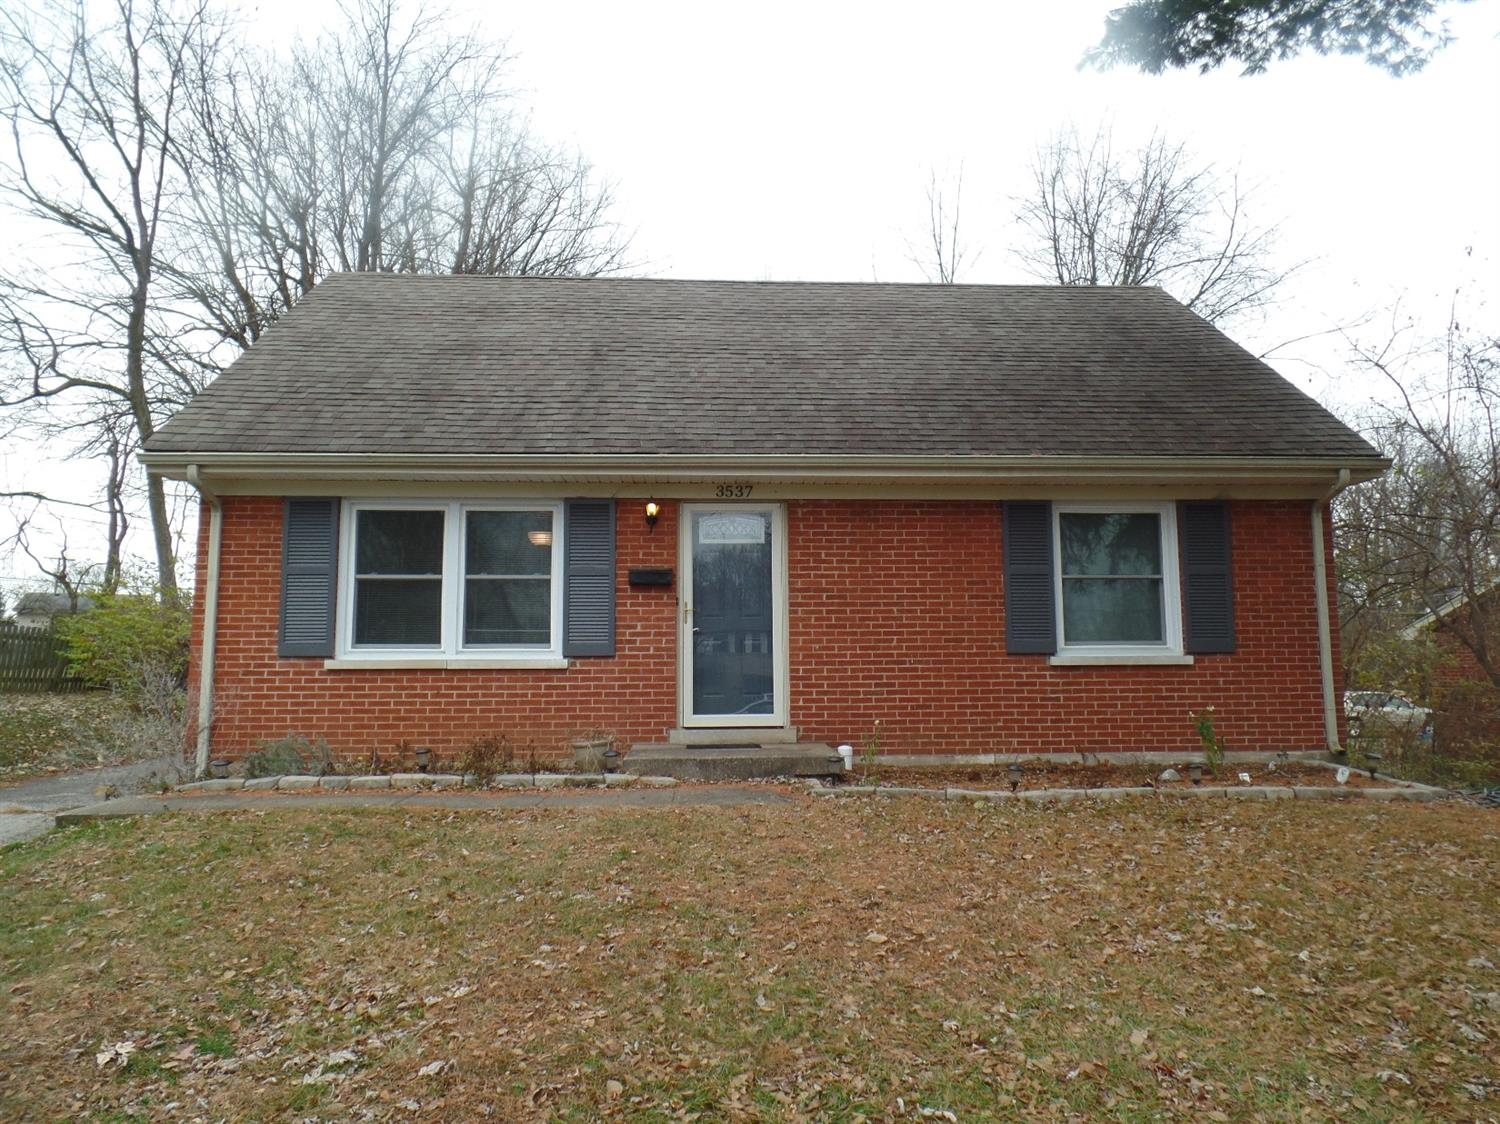 Home For Sale at 327 Stoneybrook Dr, Lexington, KY 40517